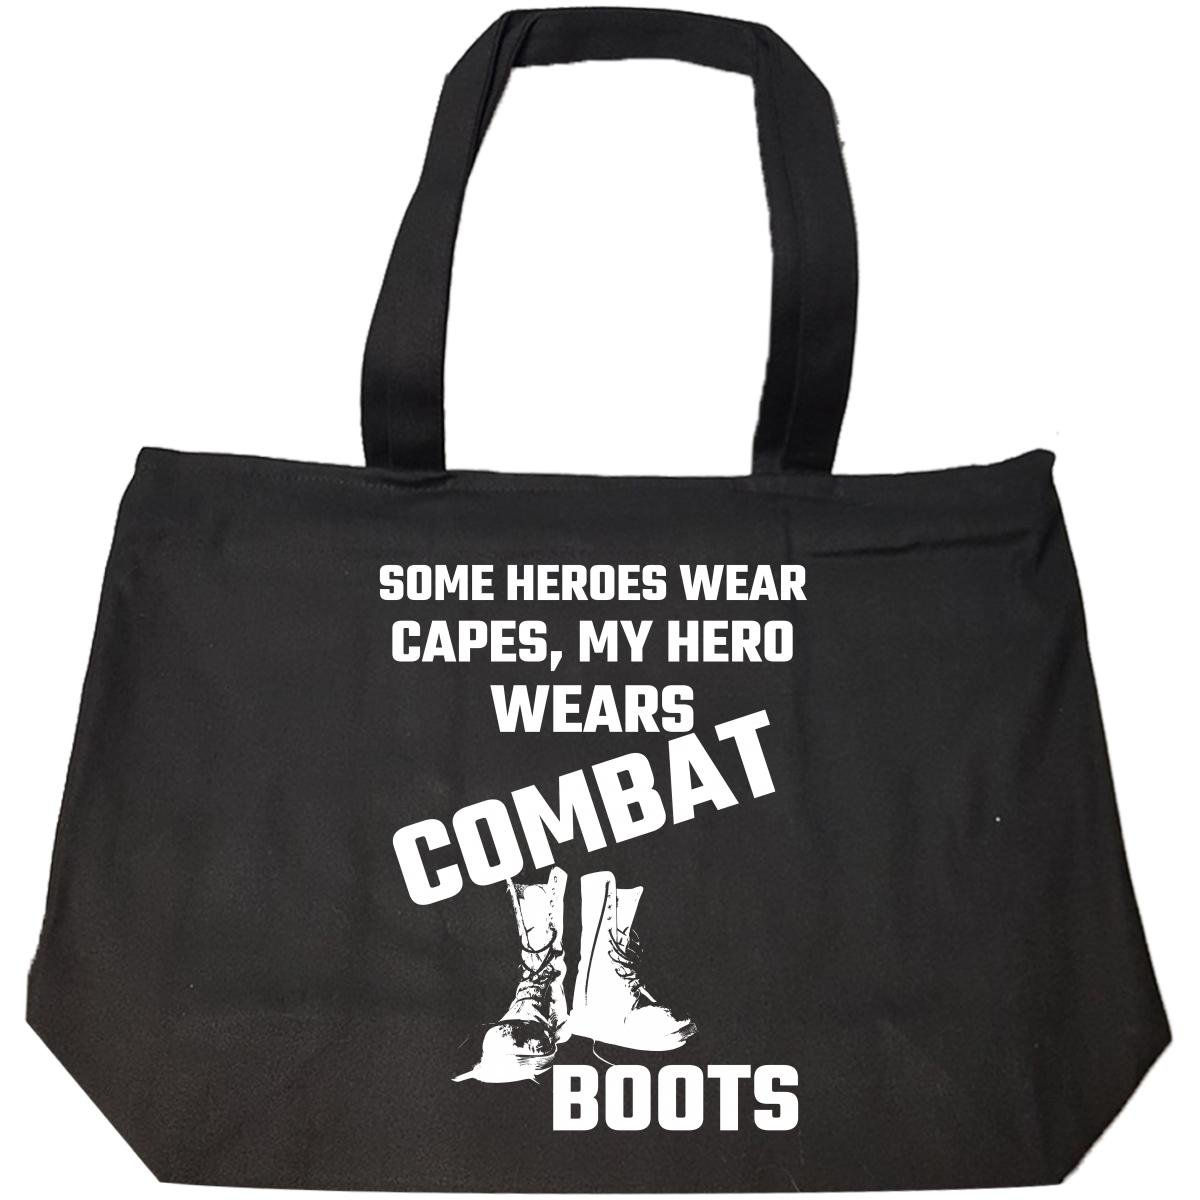 Some Heroes Wear Capes My Hero Wears Combat Boots Military - Tote Bag With Zip